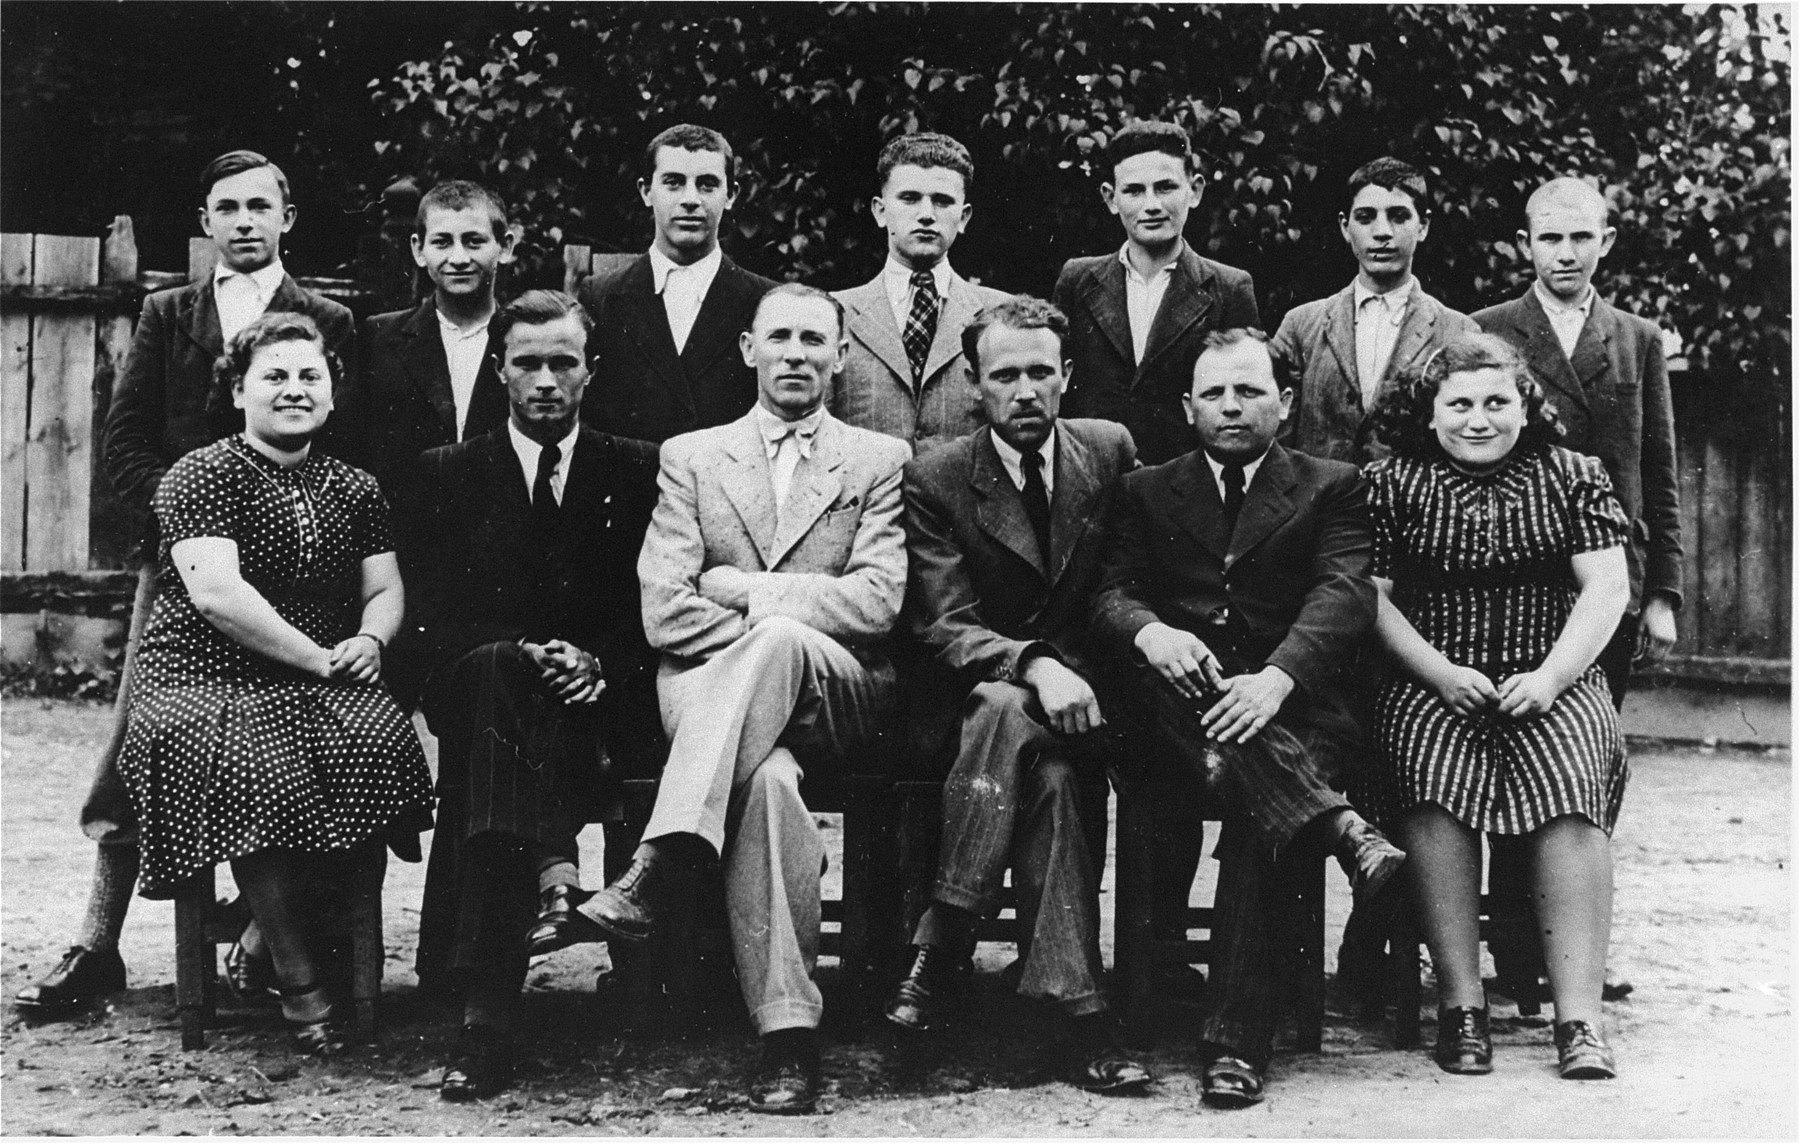 Group portrait of students who are training to be tailors at a vocational school in Tacovo.  Pictured in the front row, from left to right are: Malvina Ickovic; Jonko Jeno (the Hungarian language teacher); Raives (the director of the school); unknown; Mendel Rezmovics (a teacher); and Sheindy Ickovic.  In the back row, from left to right are: Horbas; Tobias; Stal; Ludvic Ickovic; Lajbl Fixler; Cali Kaufman and Moshe Joel Smajovics.